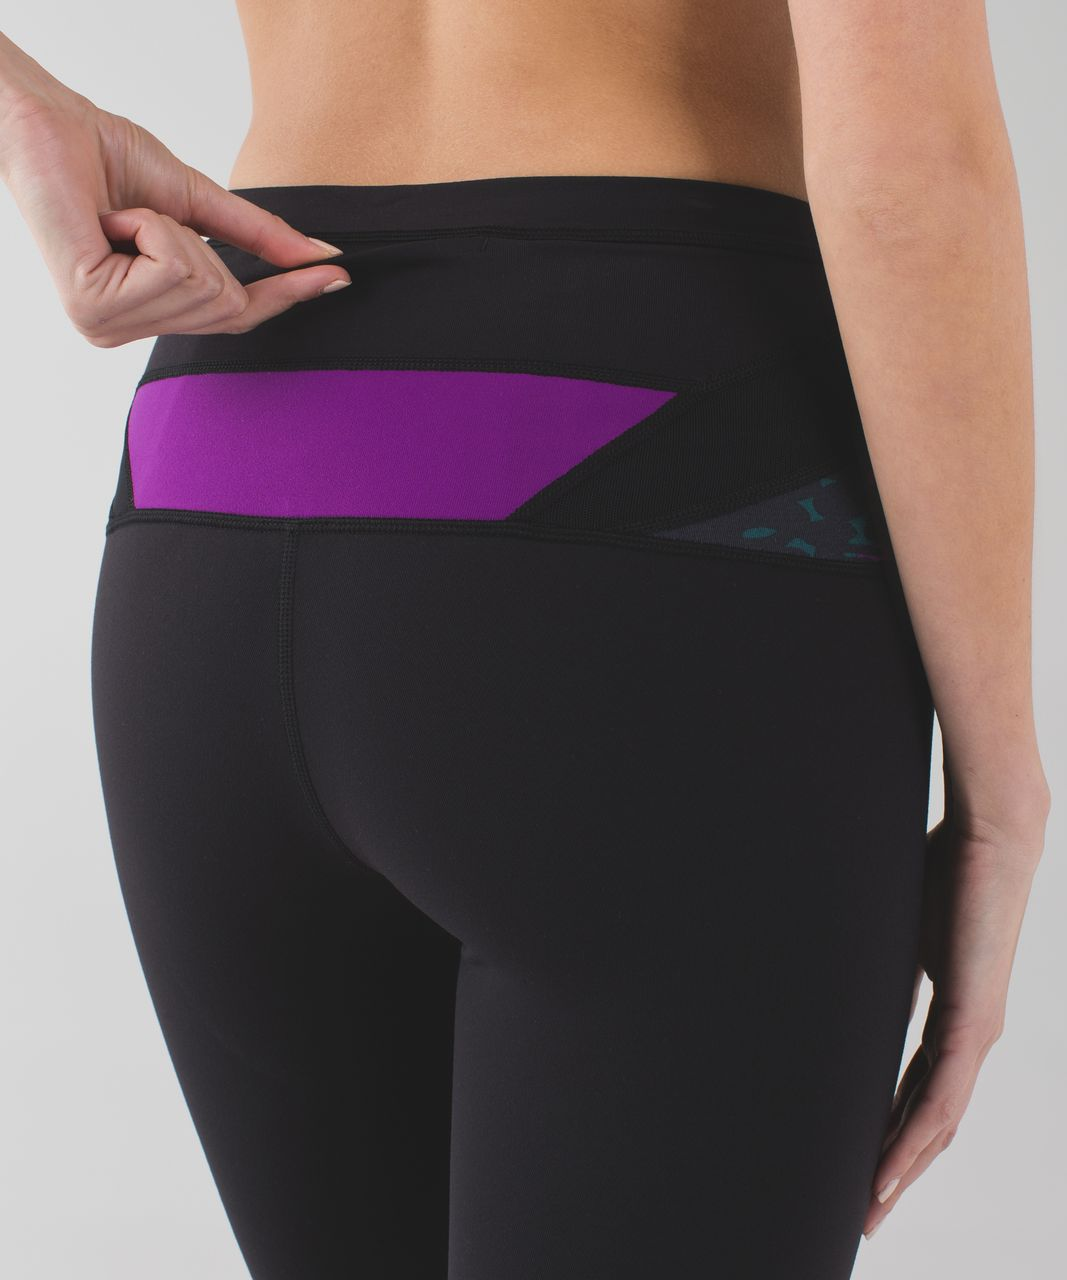 Lululemon Wunder Under Crop (Hi-Rise) - Black / Shadow Wrap Multi / Tender Violet